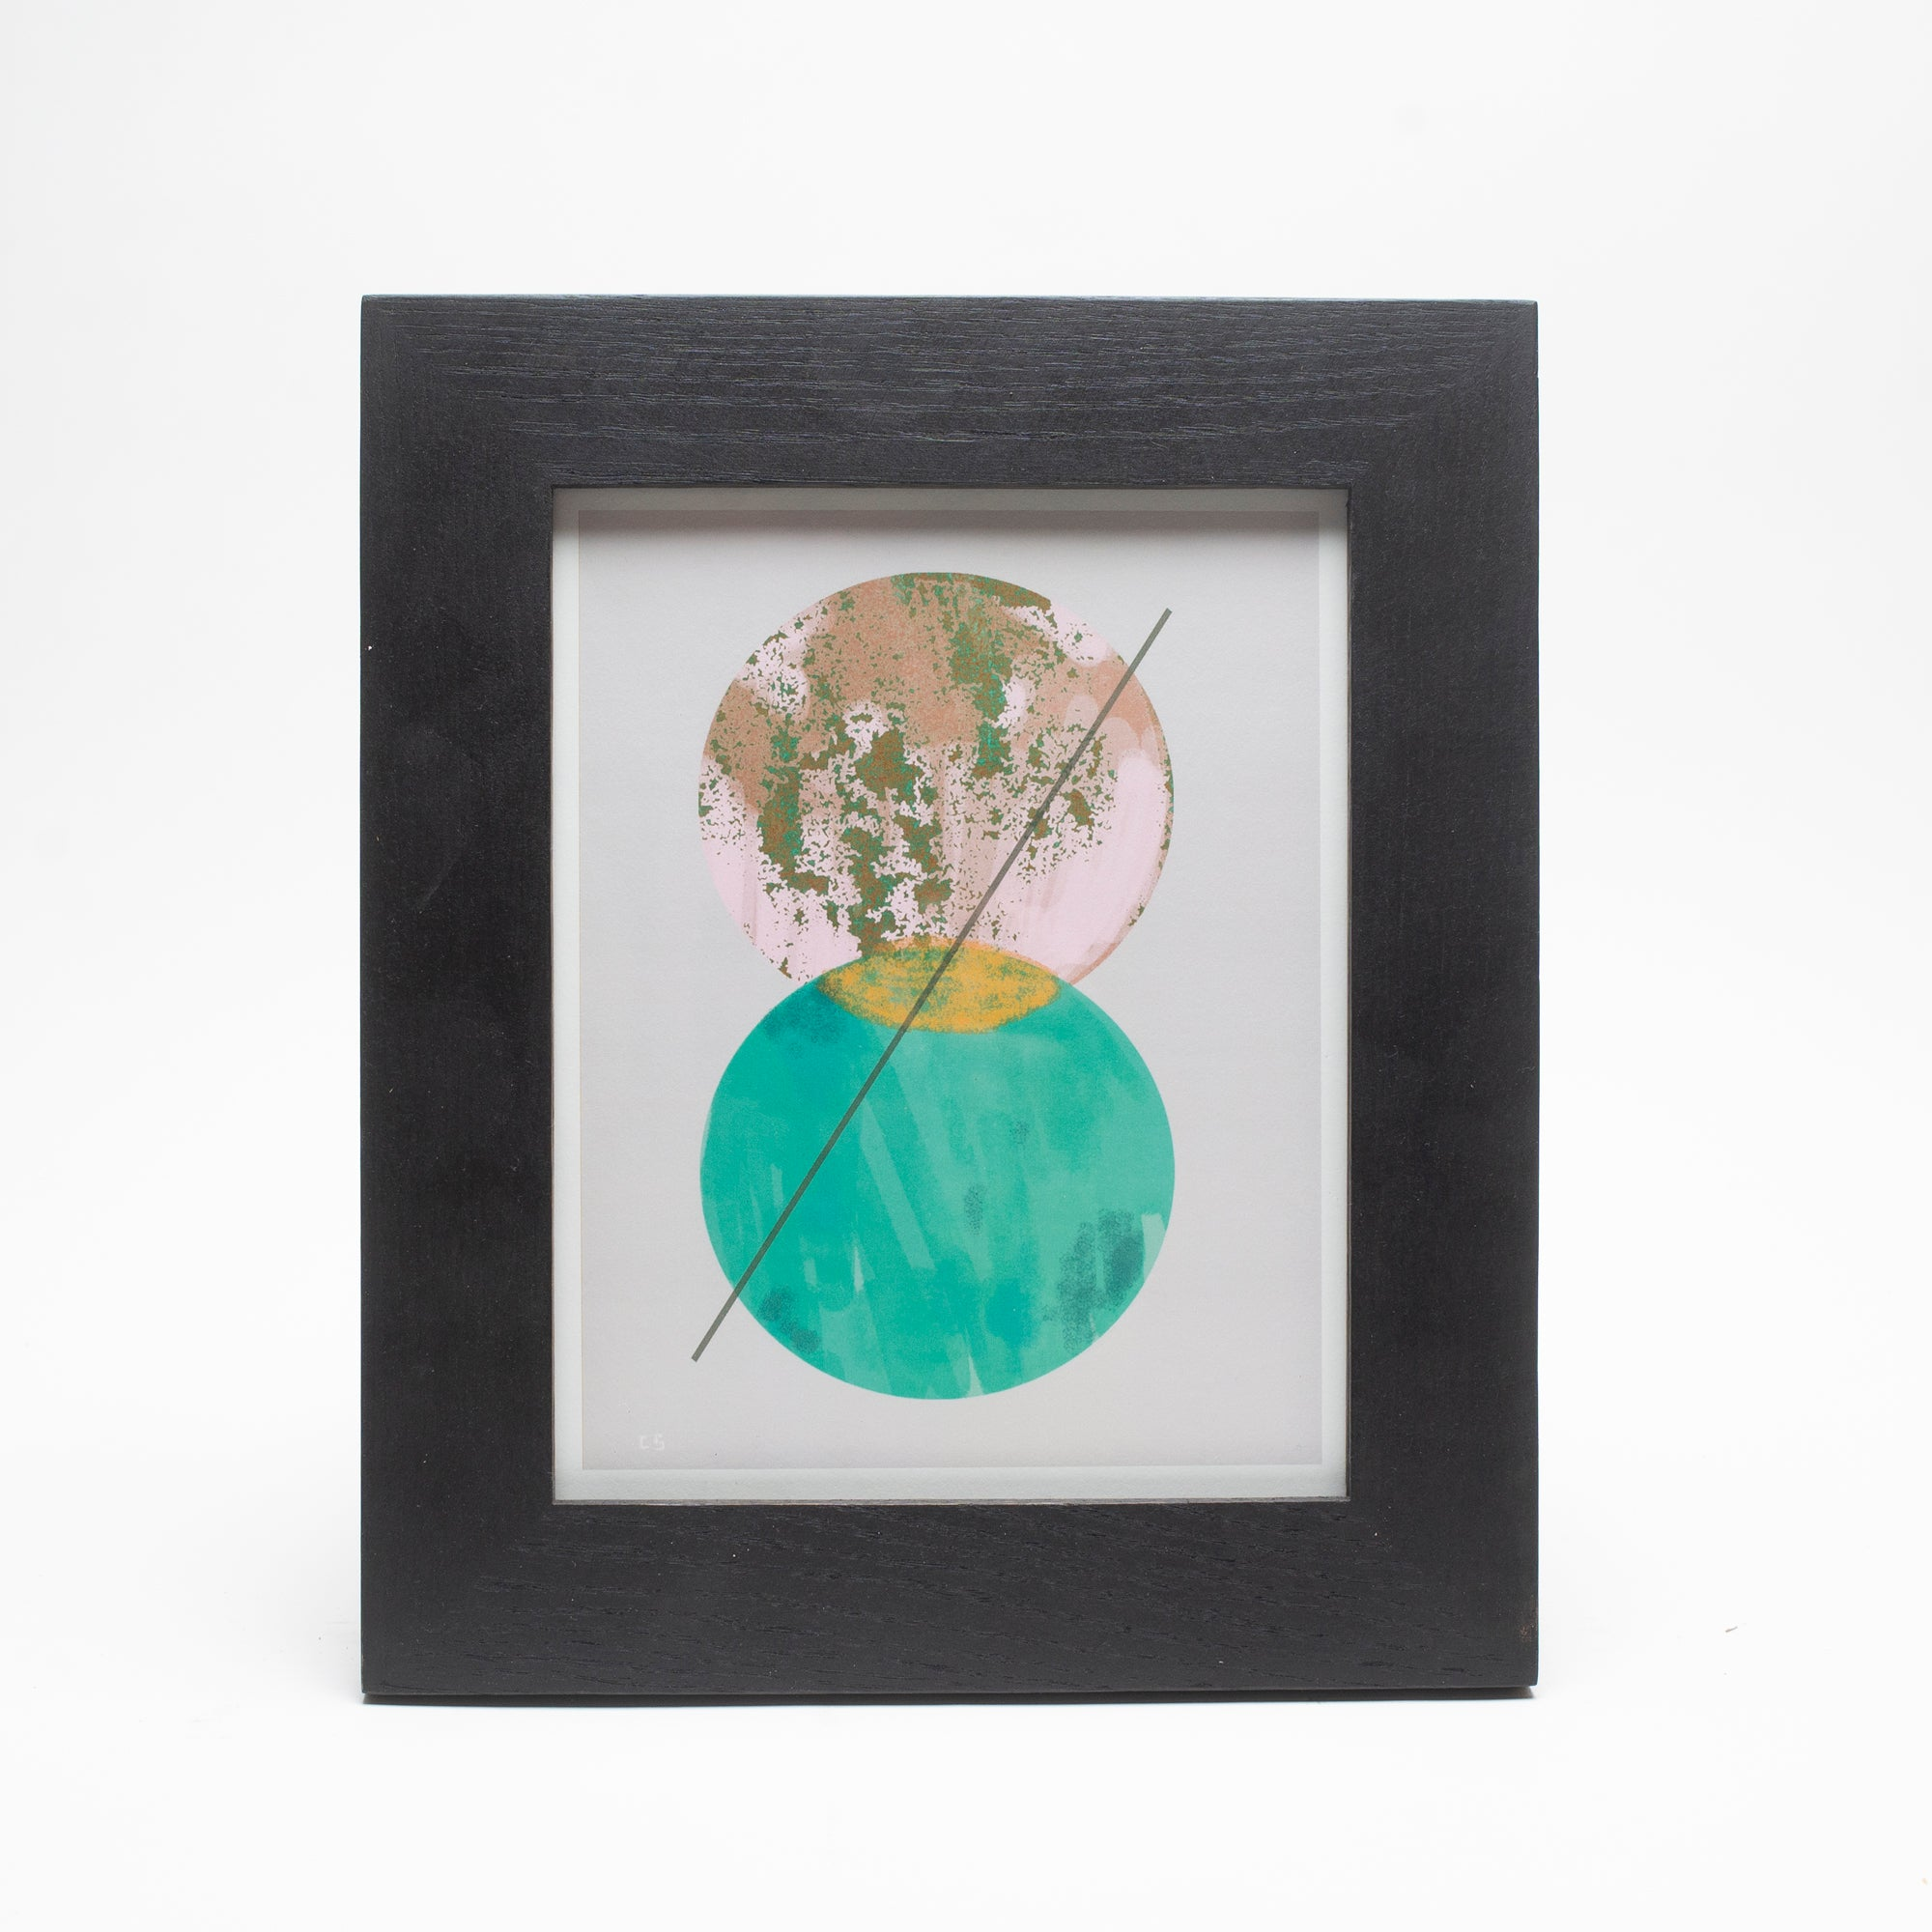 Framed Ferme à Papier Print - Cosmic Jade, Ferme à Papier, Handcrafted Home Goods and Gifts